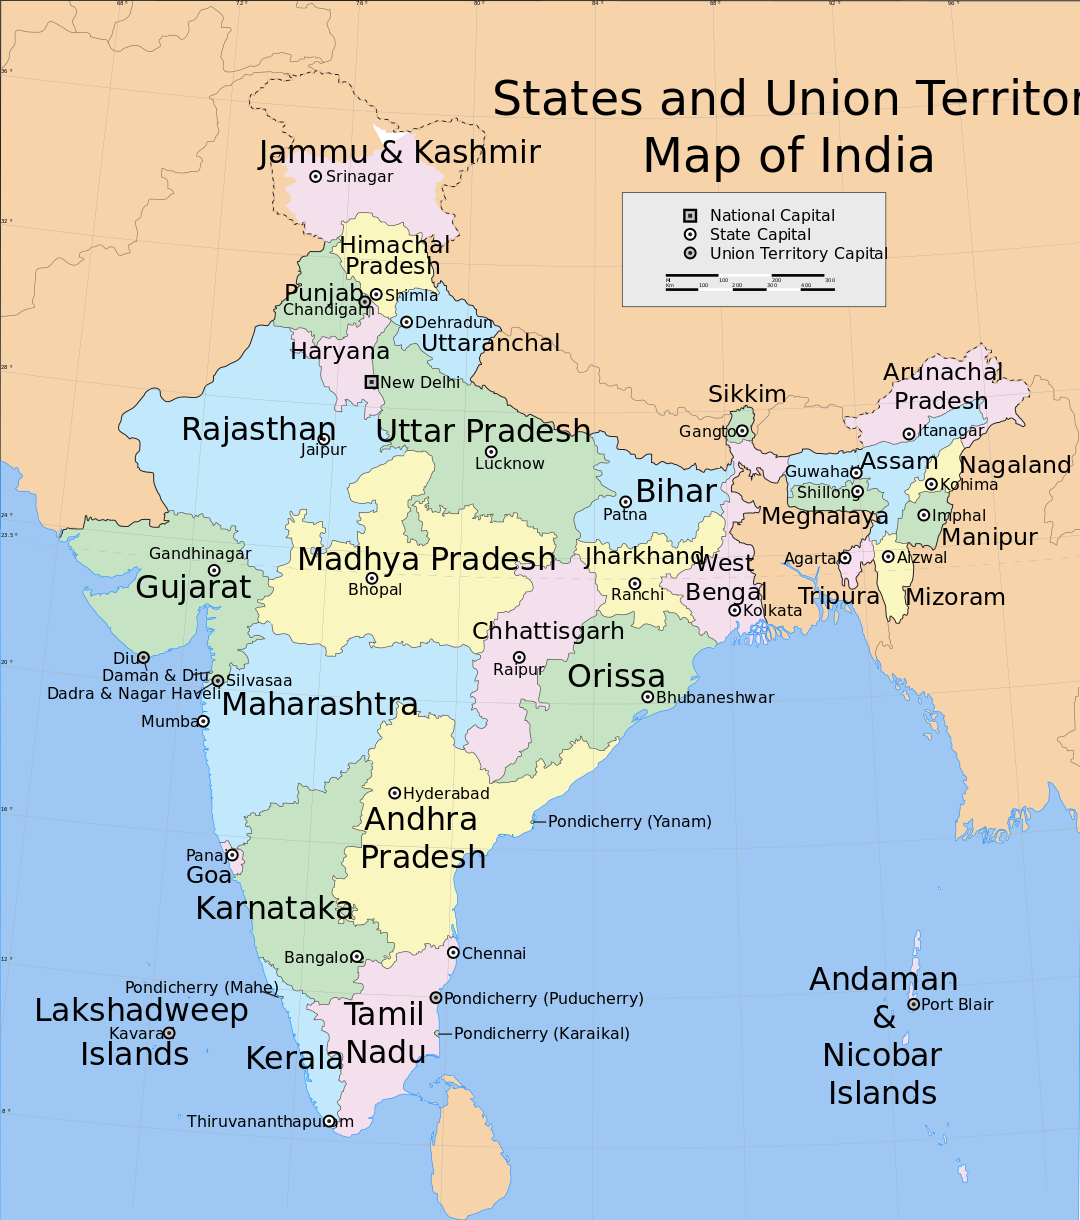 India_states_and_union_territories_map